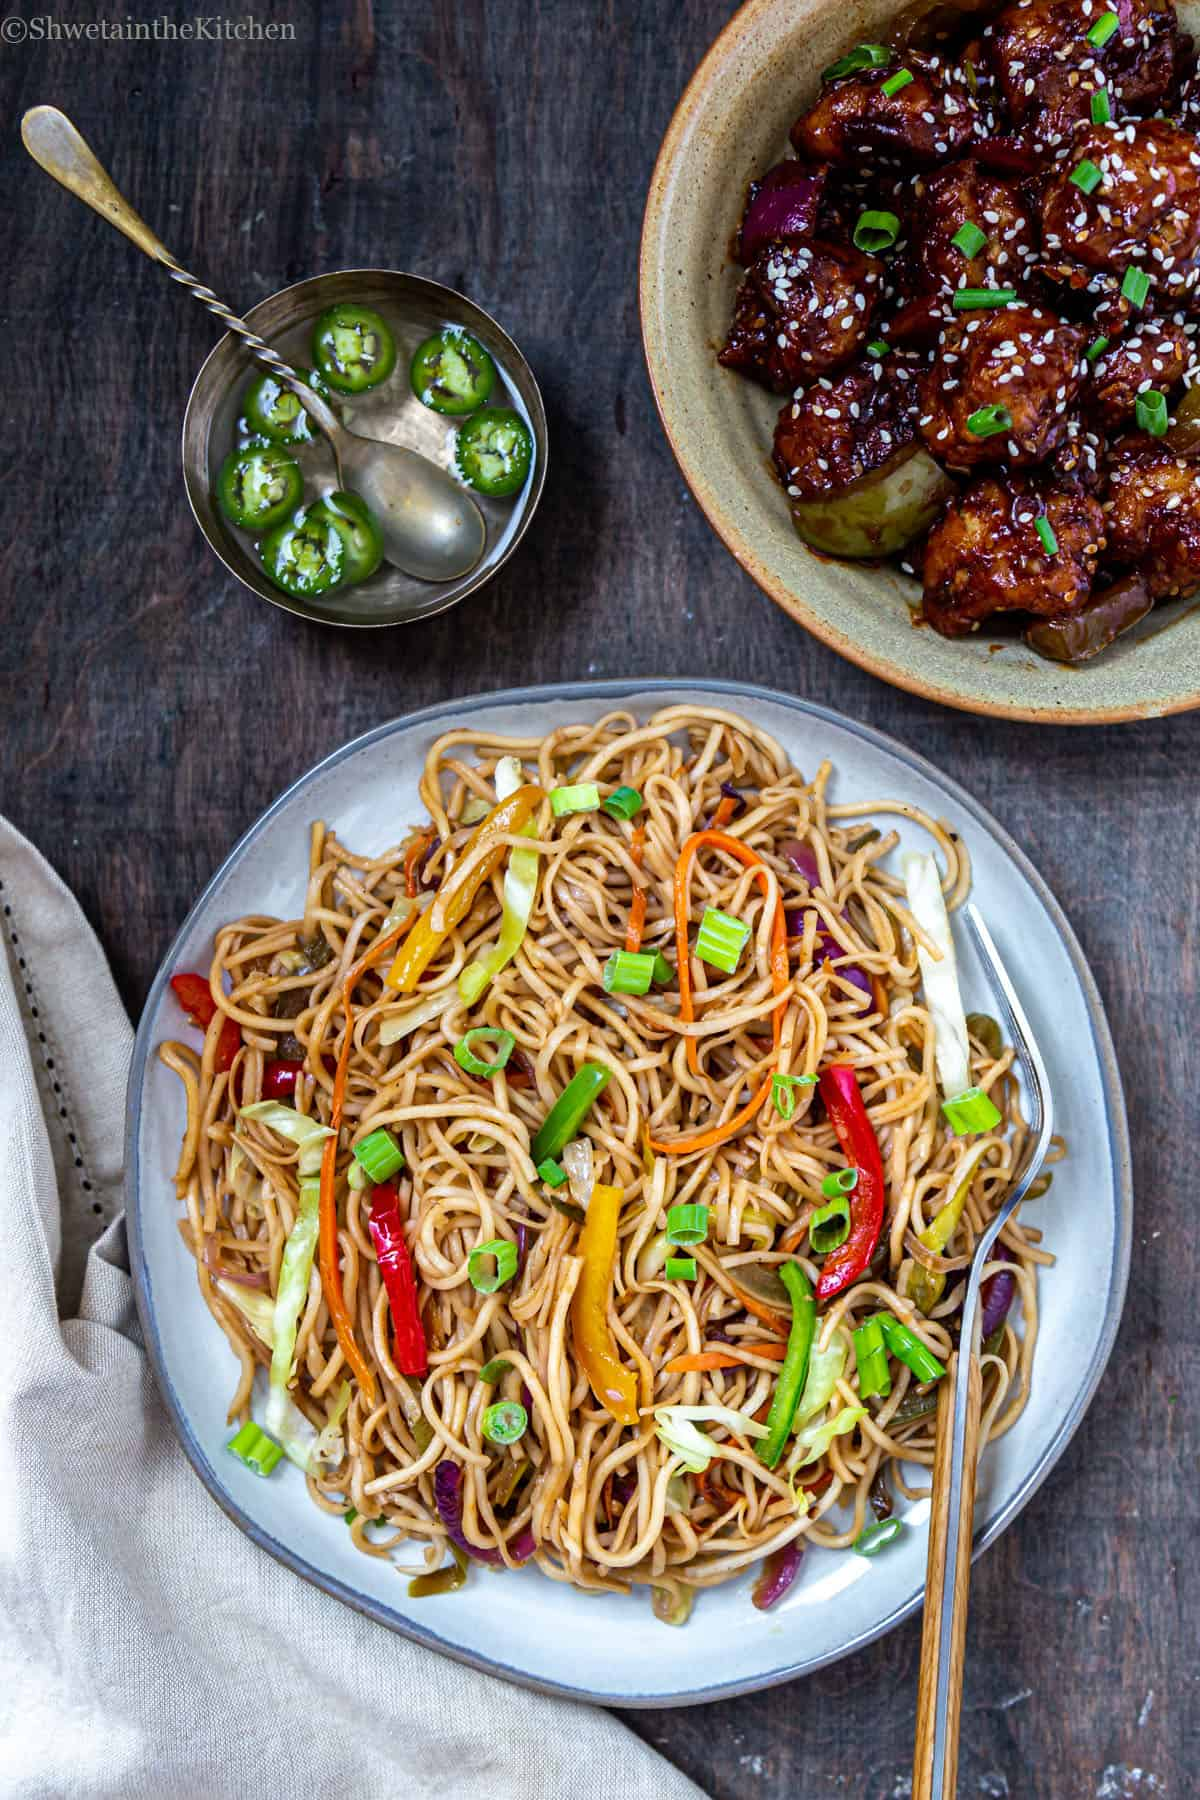 Top view of Hakka noodles on plate, bowl of gobi manchurian and bowl of vinegar with green chillies